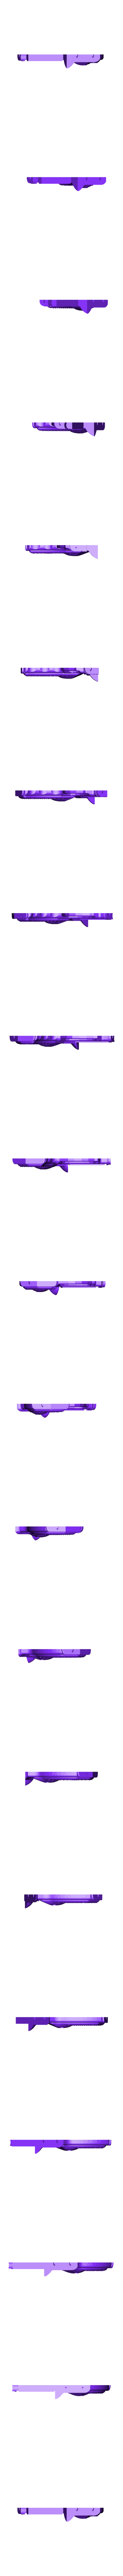 Hawkmoon Handgrip Left.stl Download free STL file Full size Hawkmoon • 3D printer design, Easton3D